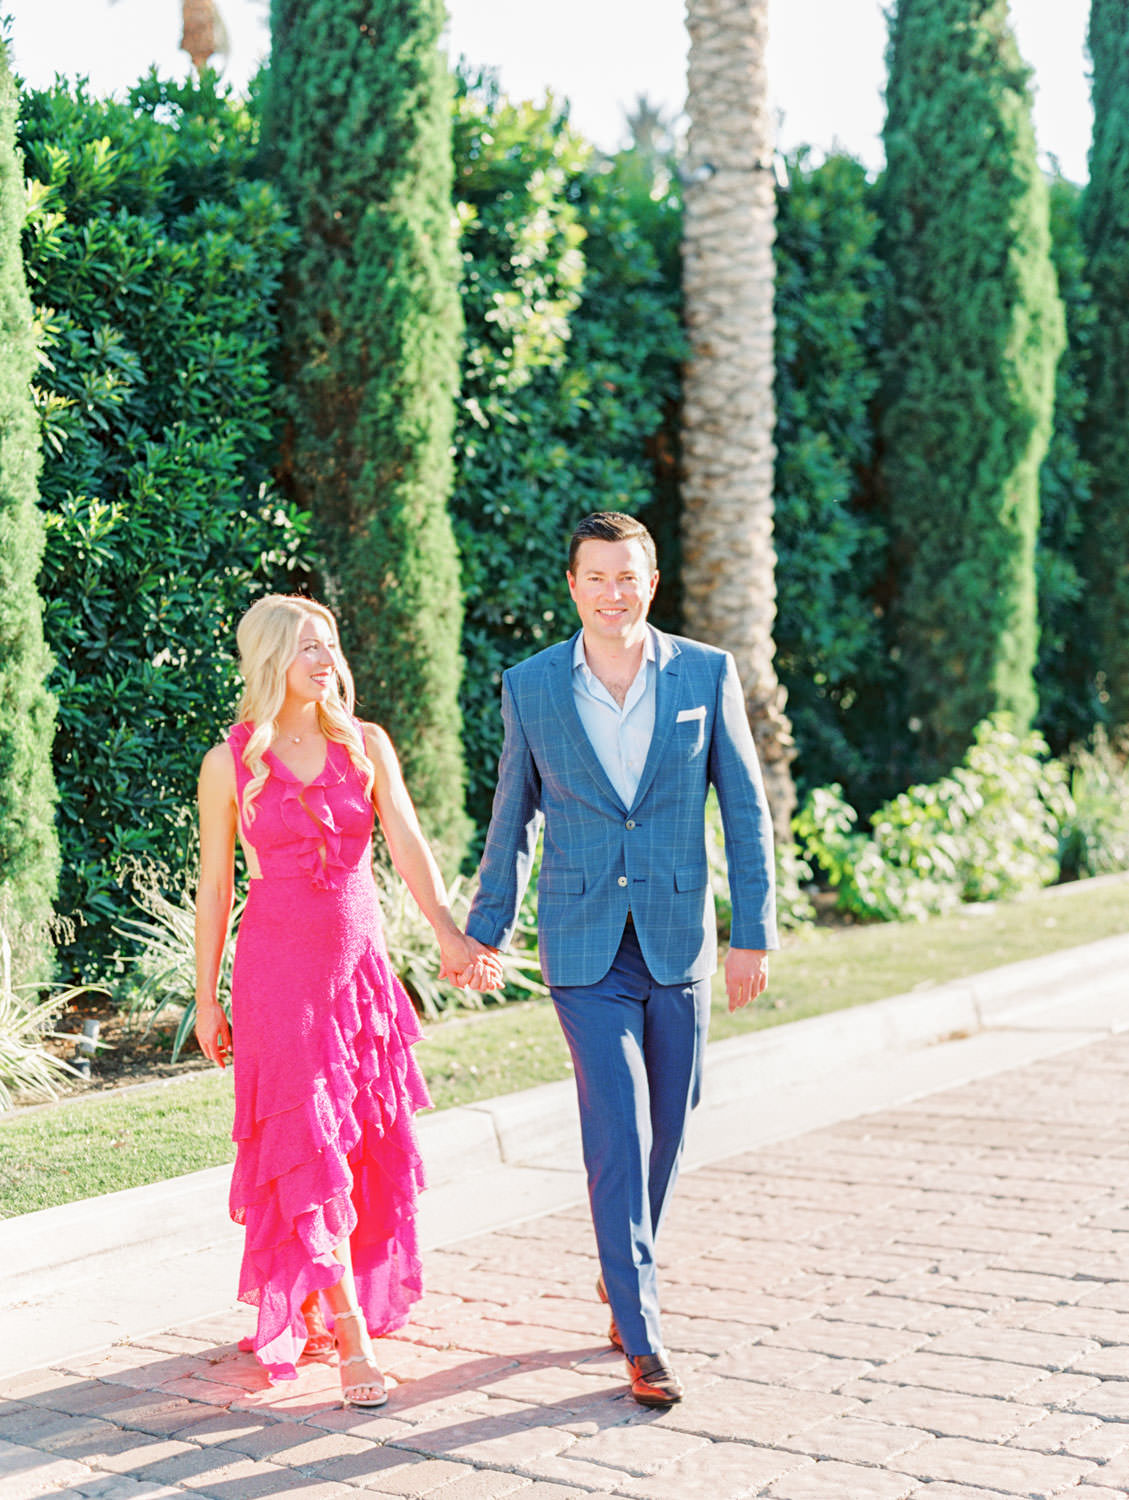 Bride in long pink ruffle dress and groom in blue suit walking by cyprus trees. La Quinta Resort Engagement Photos on Film by Cavin Elizabeth Photography